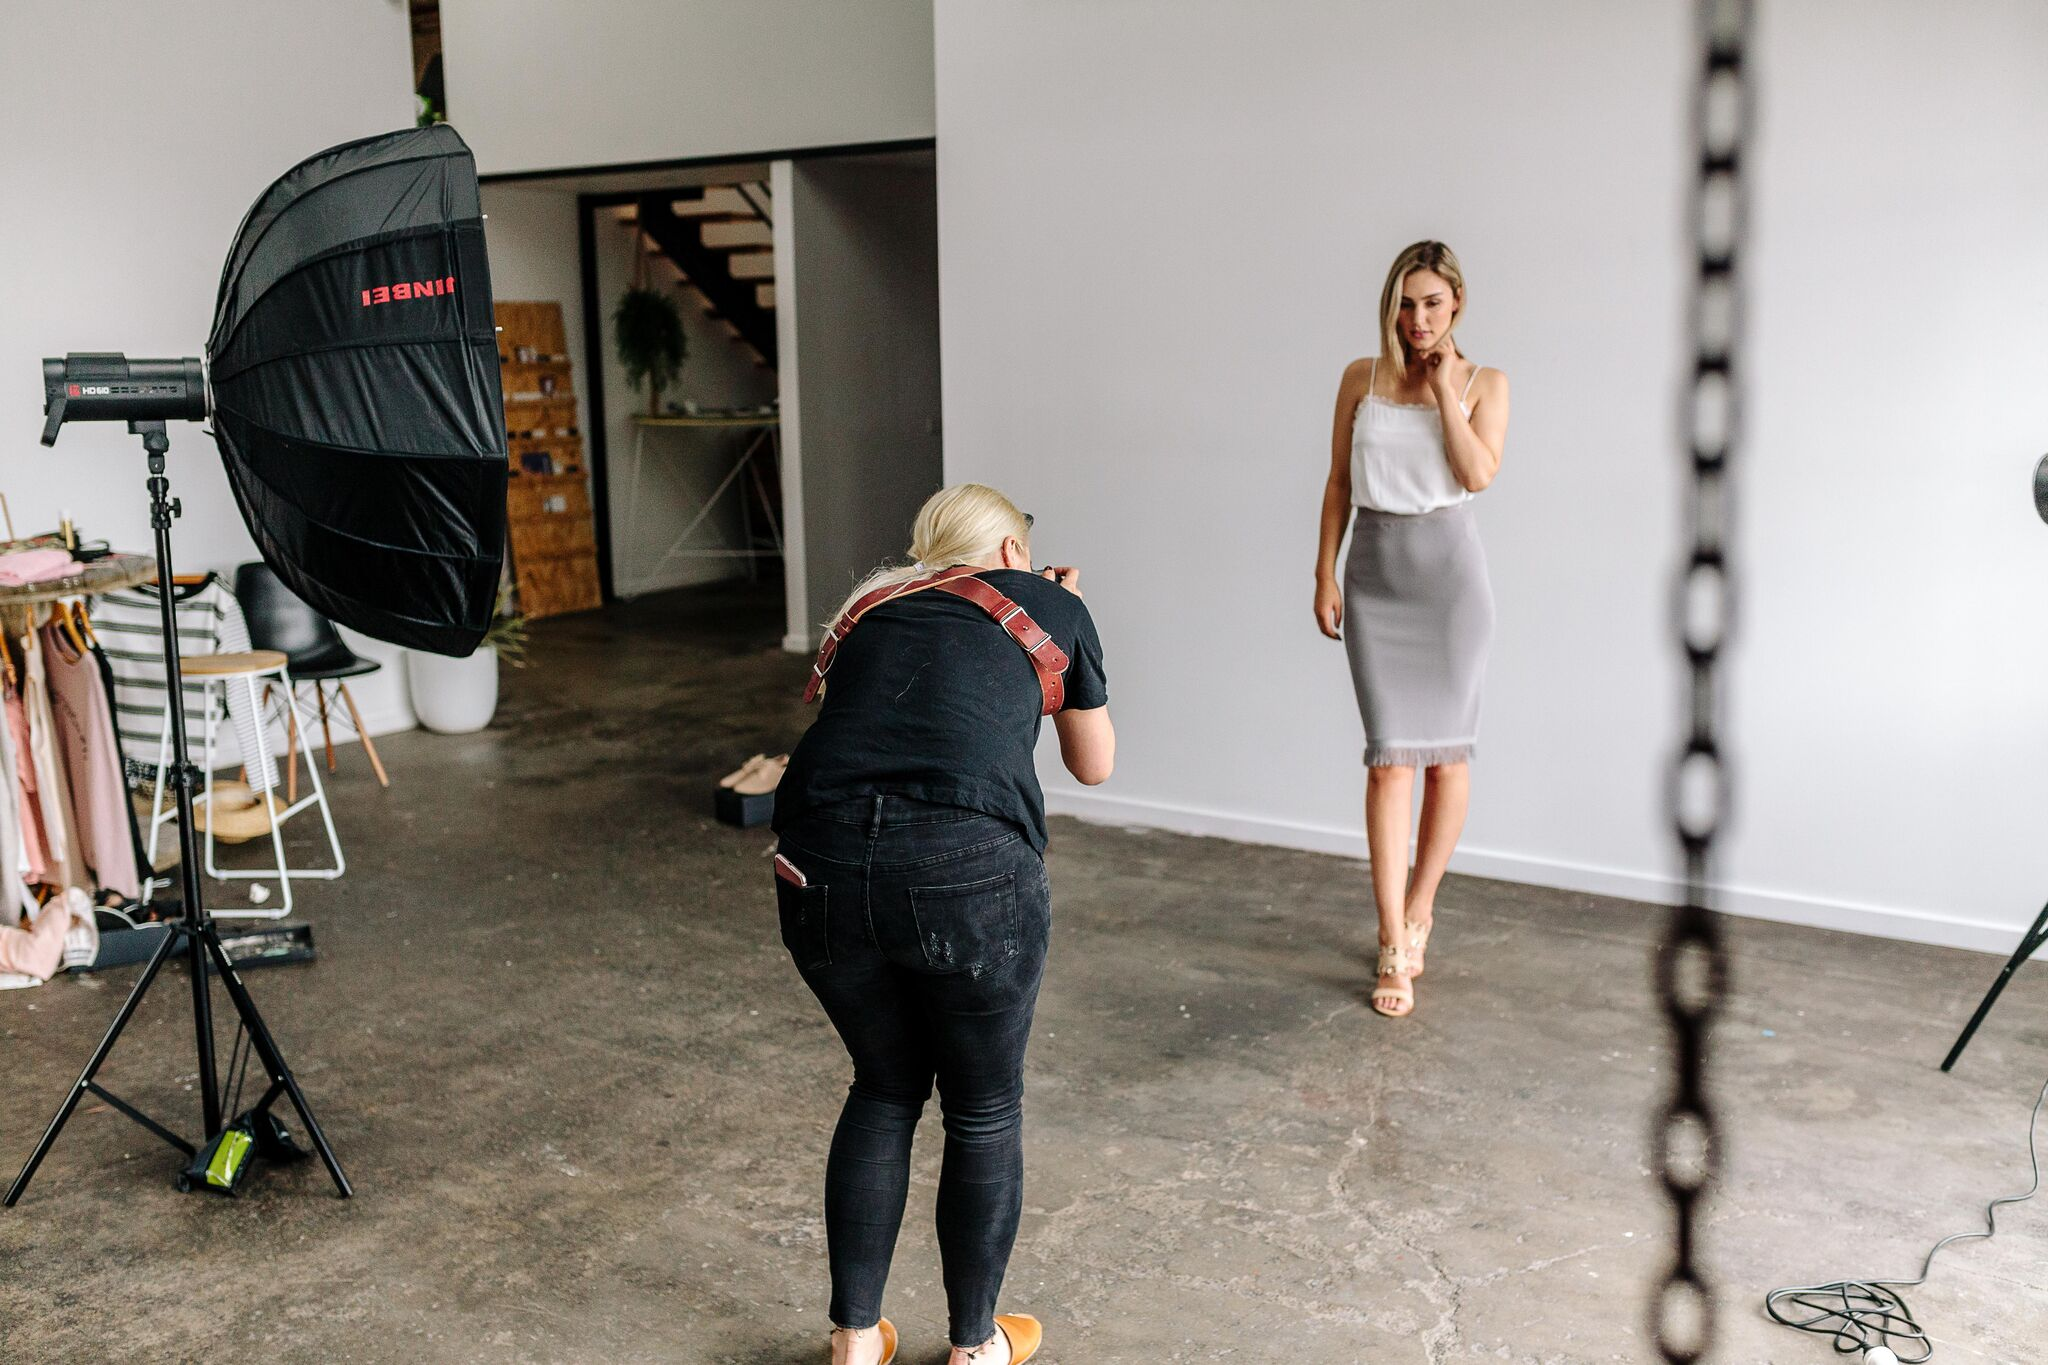 photoshoot-booking-the-nook-creative-space-hire-mornington-1000px-0016.jpg